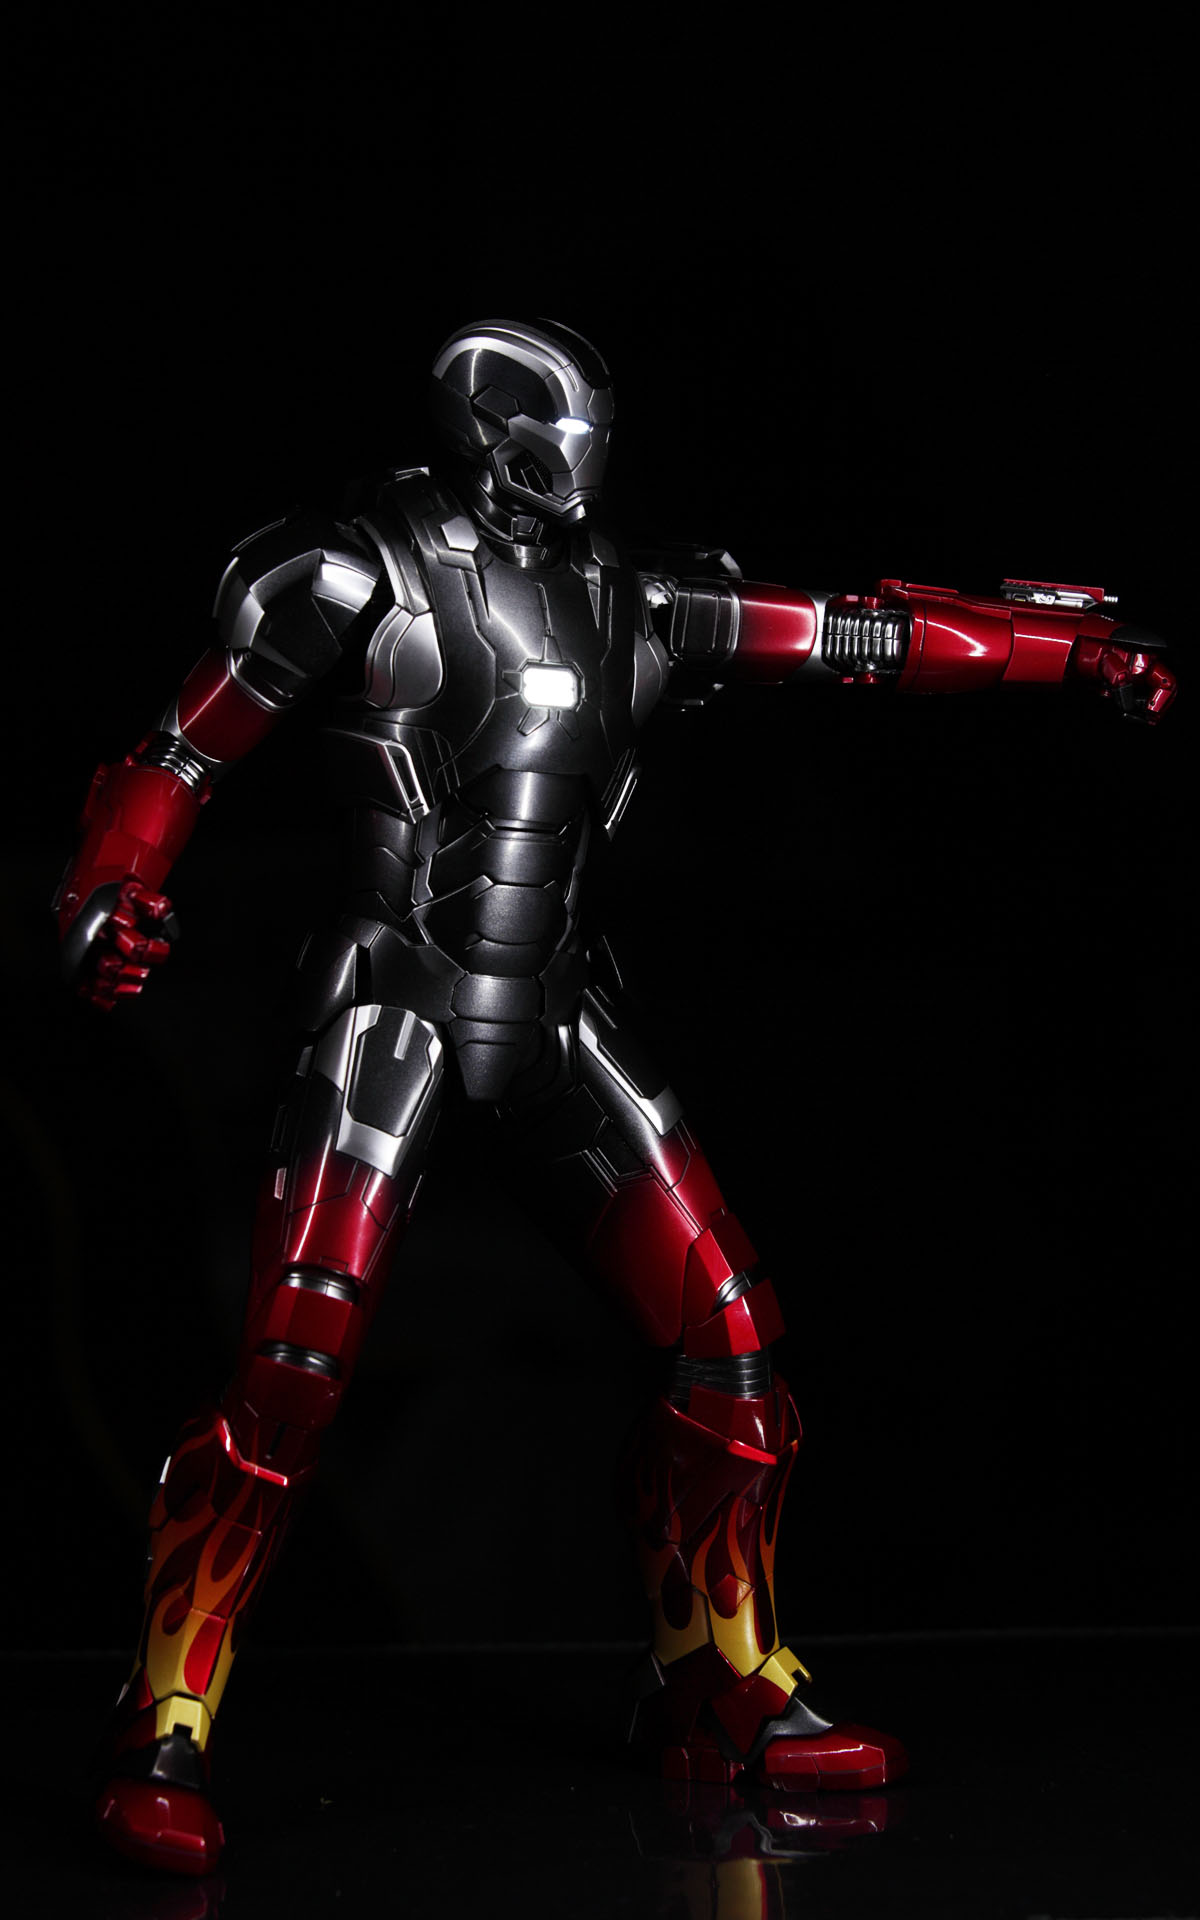 hottoys-iron-man3-mark-22-hot-rod-picture02